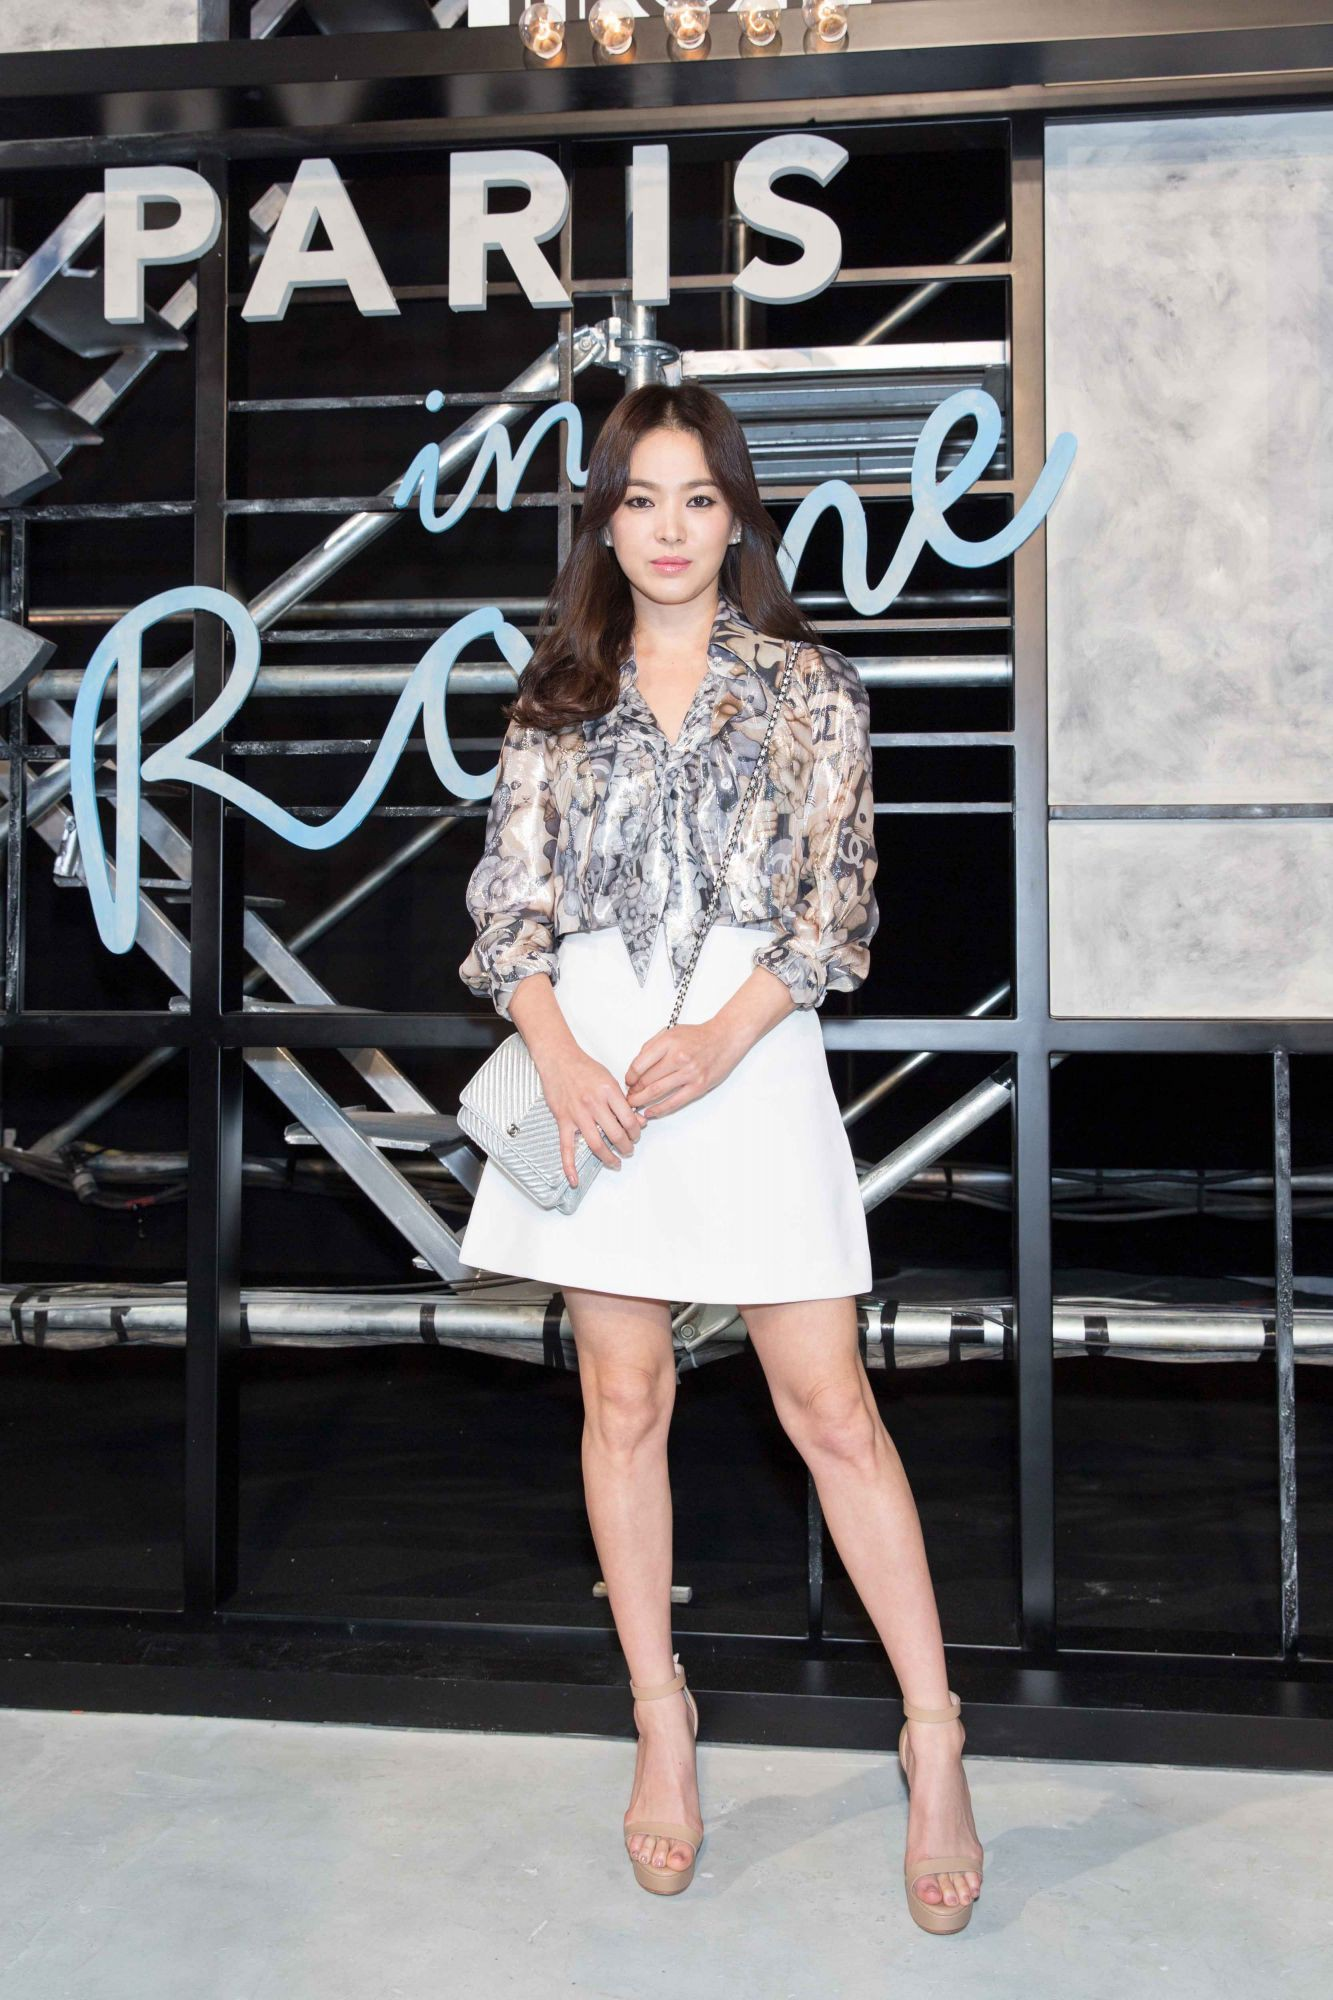 event-20160609114649-song-hye-kyo_mecc81tiers-d27art-paris-in-rome-201516-show-in-beijing_photocall-pictures_resized_1333x2000